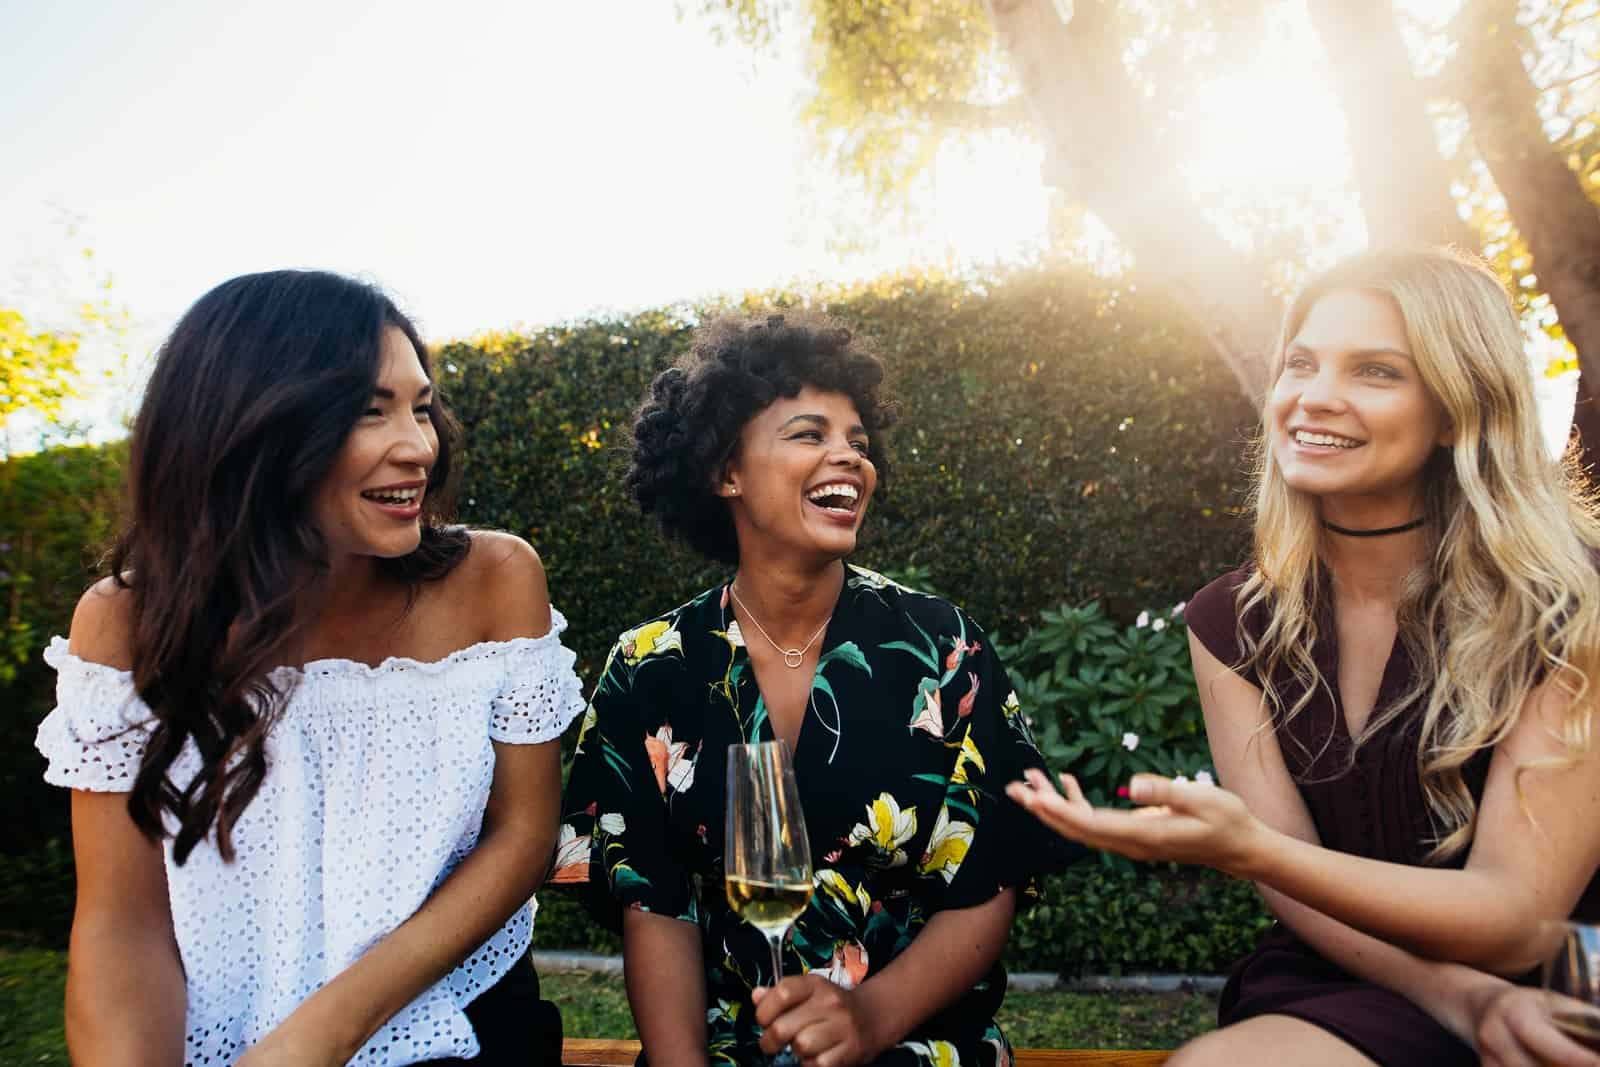 Here Are 5 Things You Need to Know Before Joining a Friendship App